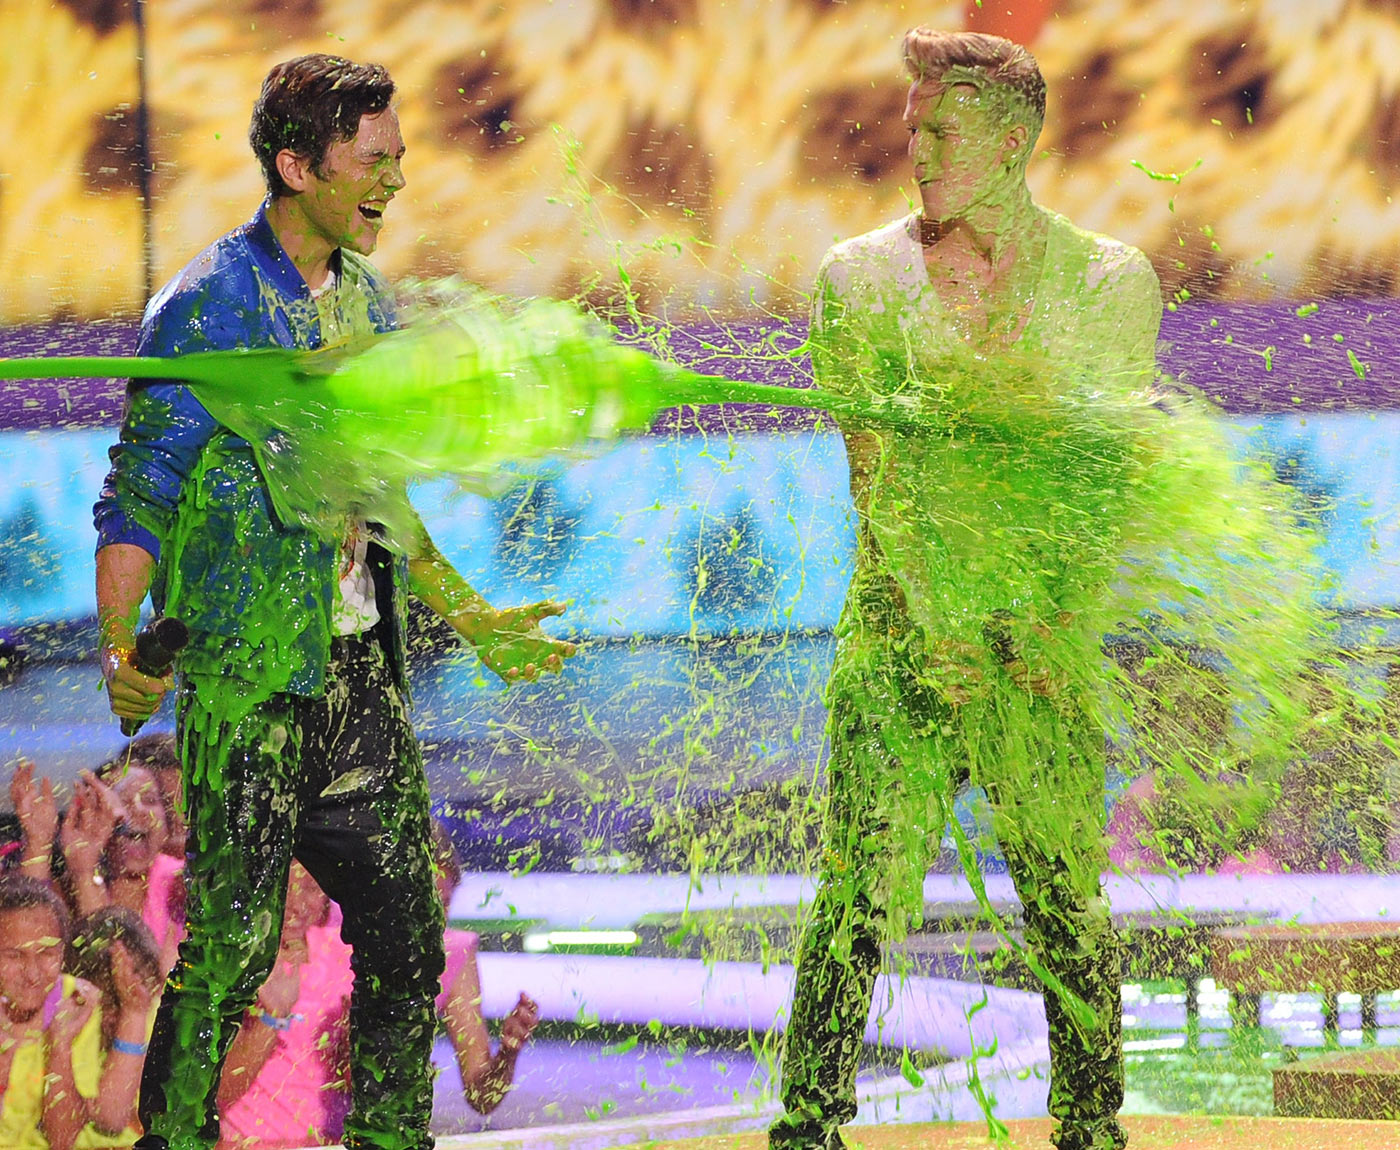 Even dreamy pop stars can't escape the slime! Crooners Austin Mahone and Cody Simpson were both hit with a strong blast of green goo while presenting onstage.